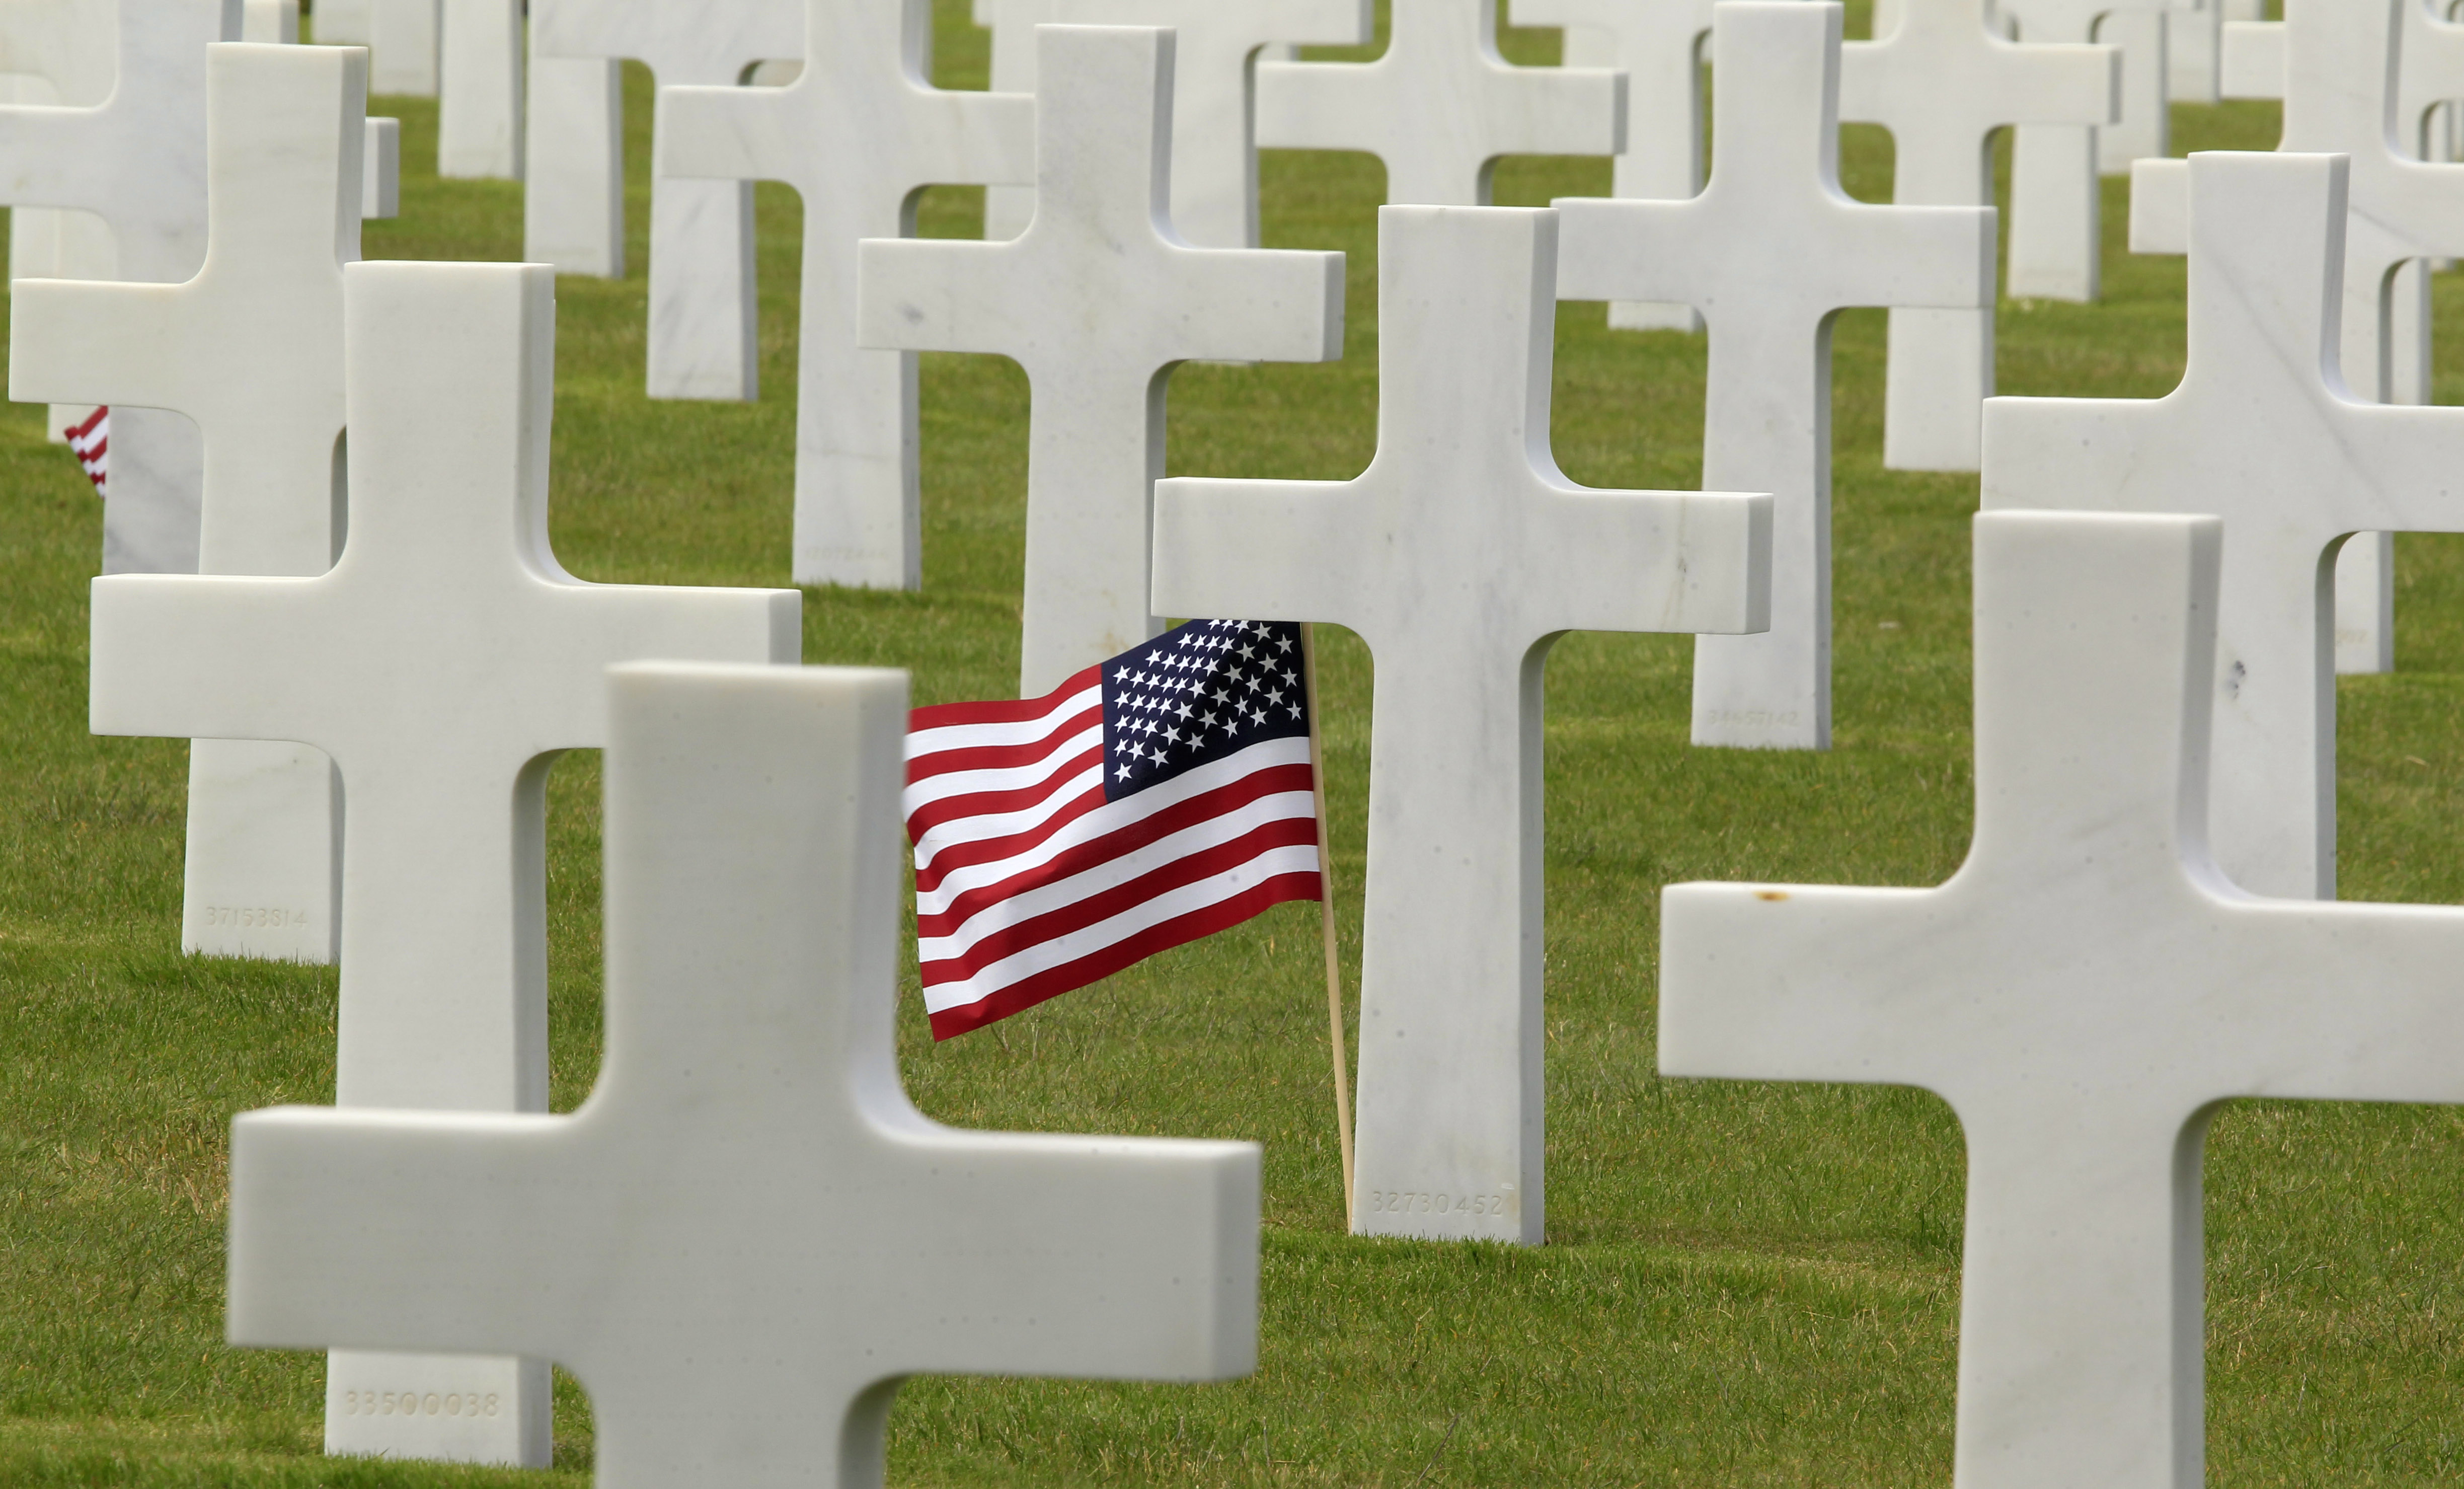 A U.S. flag flies among the graves at the Colleville American military cemetery, in Colleville sur Mer, western France, Thursday June 6, 2013, on the day of the commemoration of the 69th anniversary of the D-Day.(AP Photo/Remy de la Mauviniere)